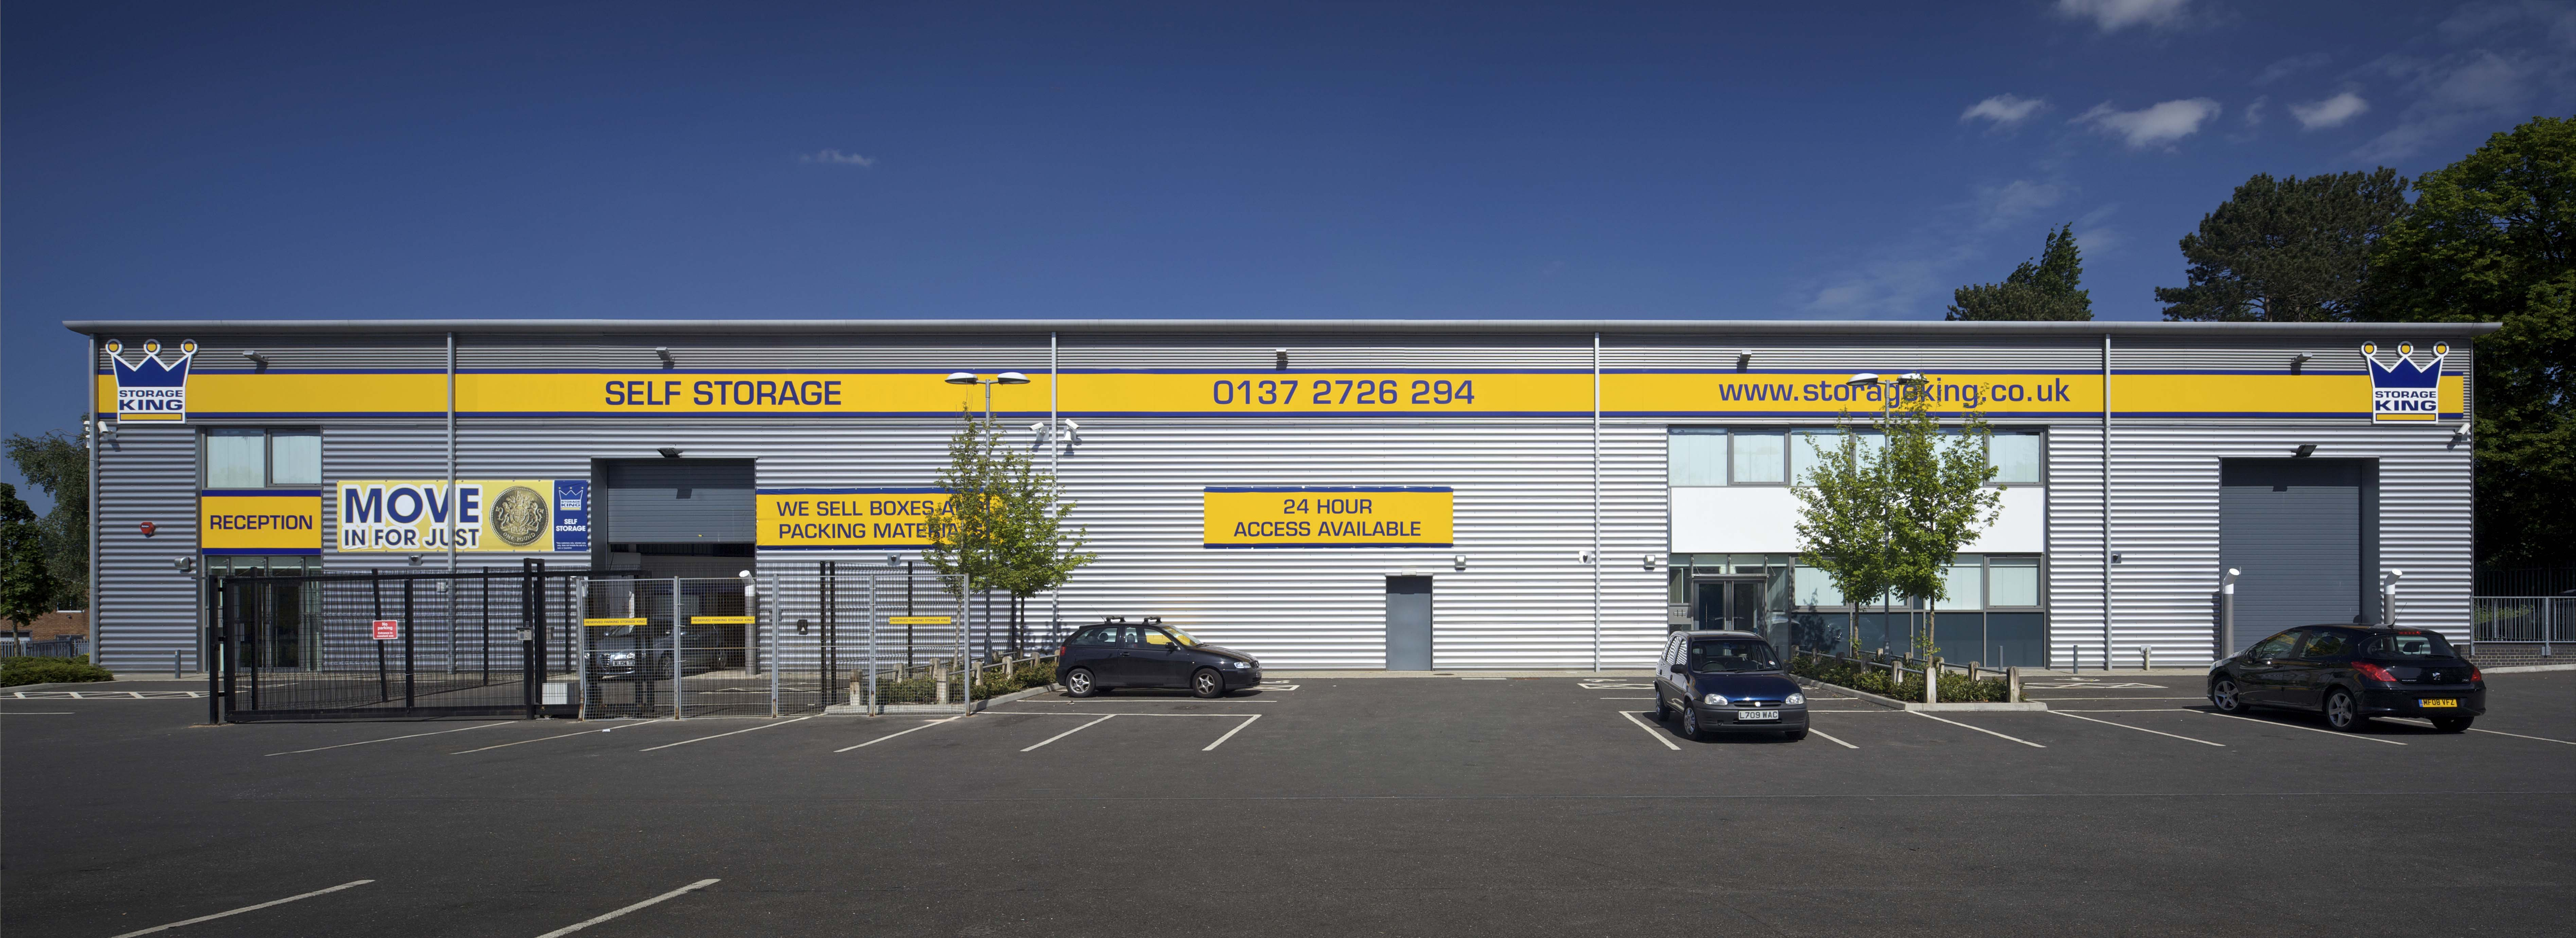 find secure storage for motor vehicles in west bromwich